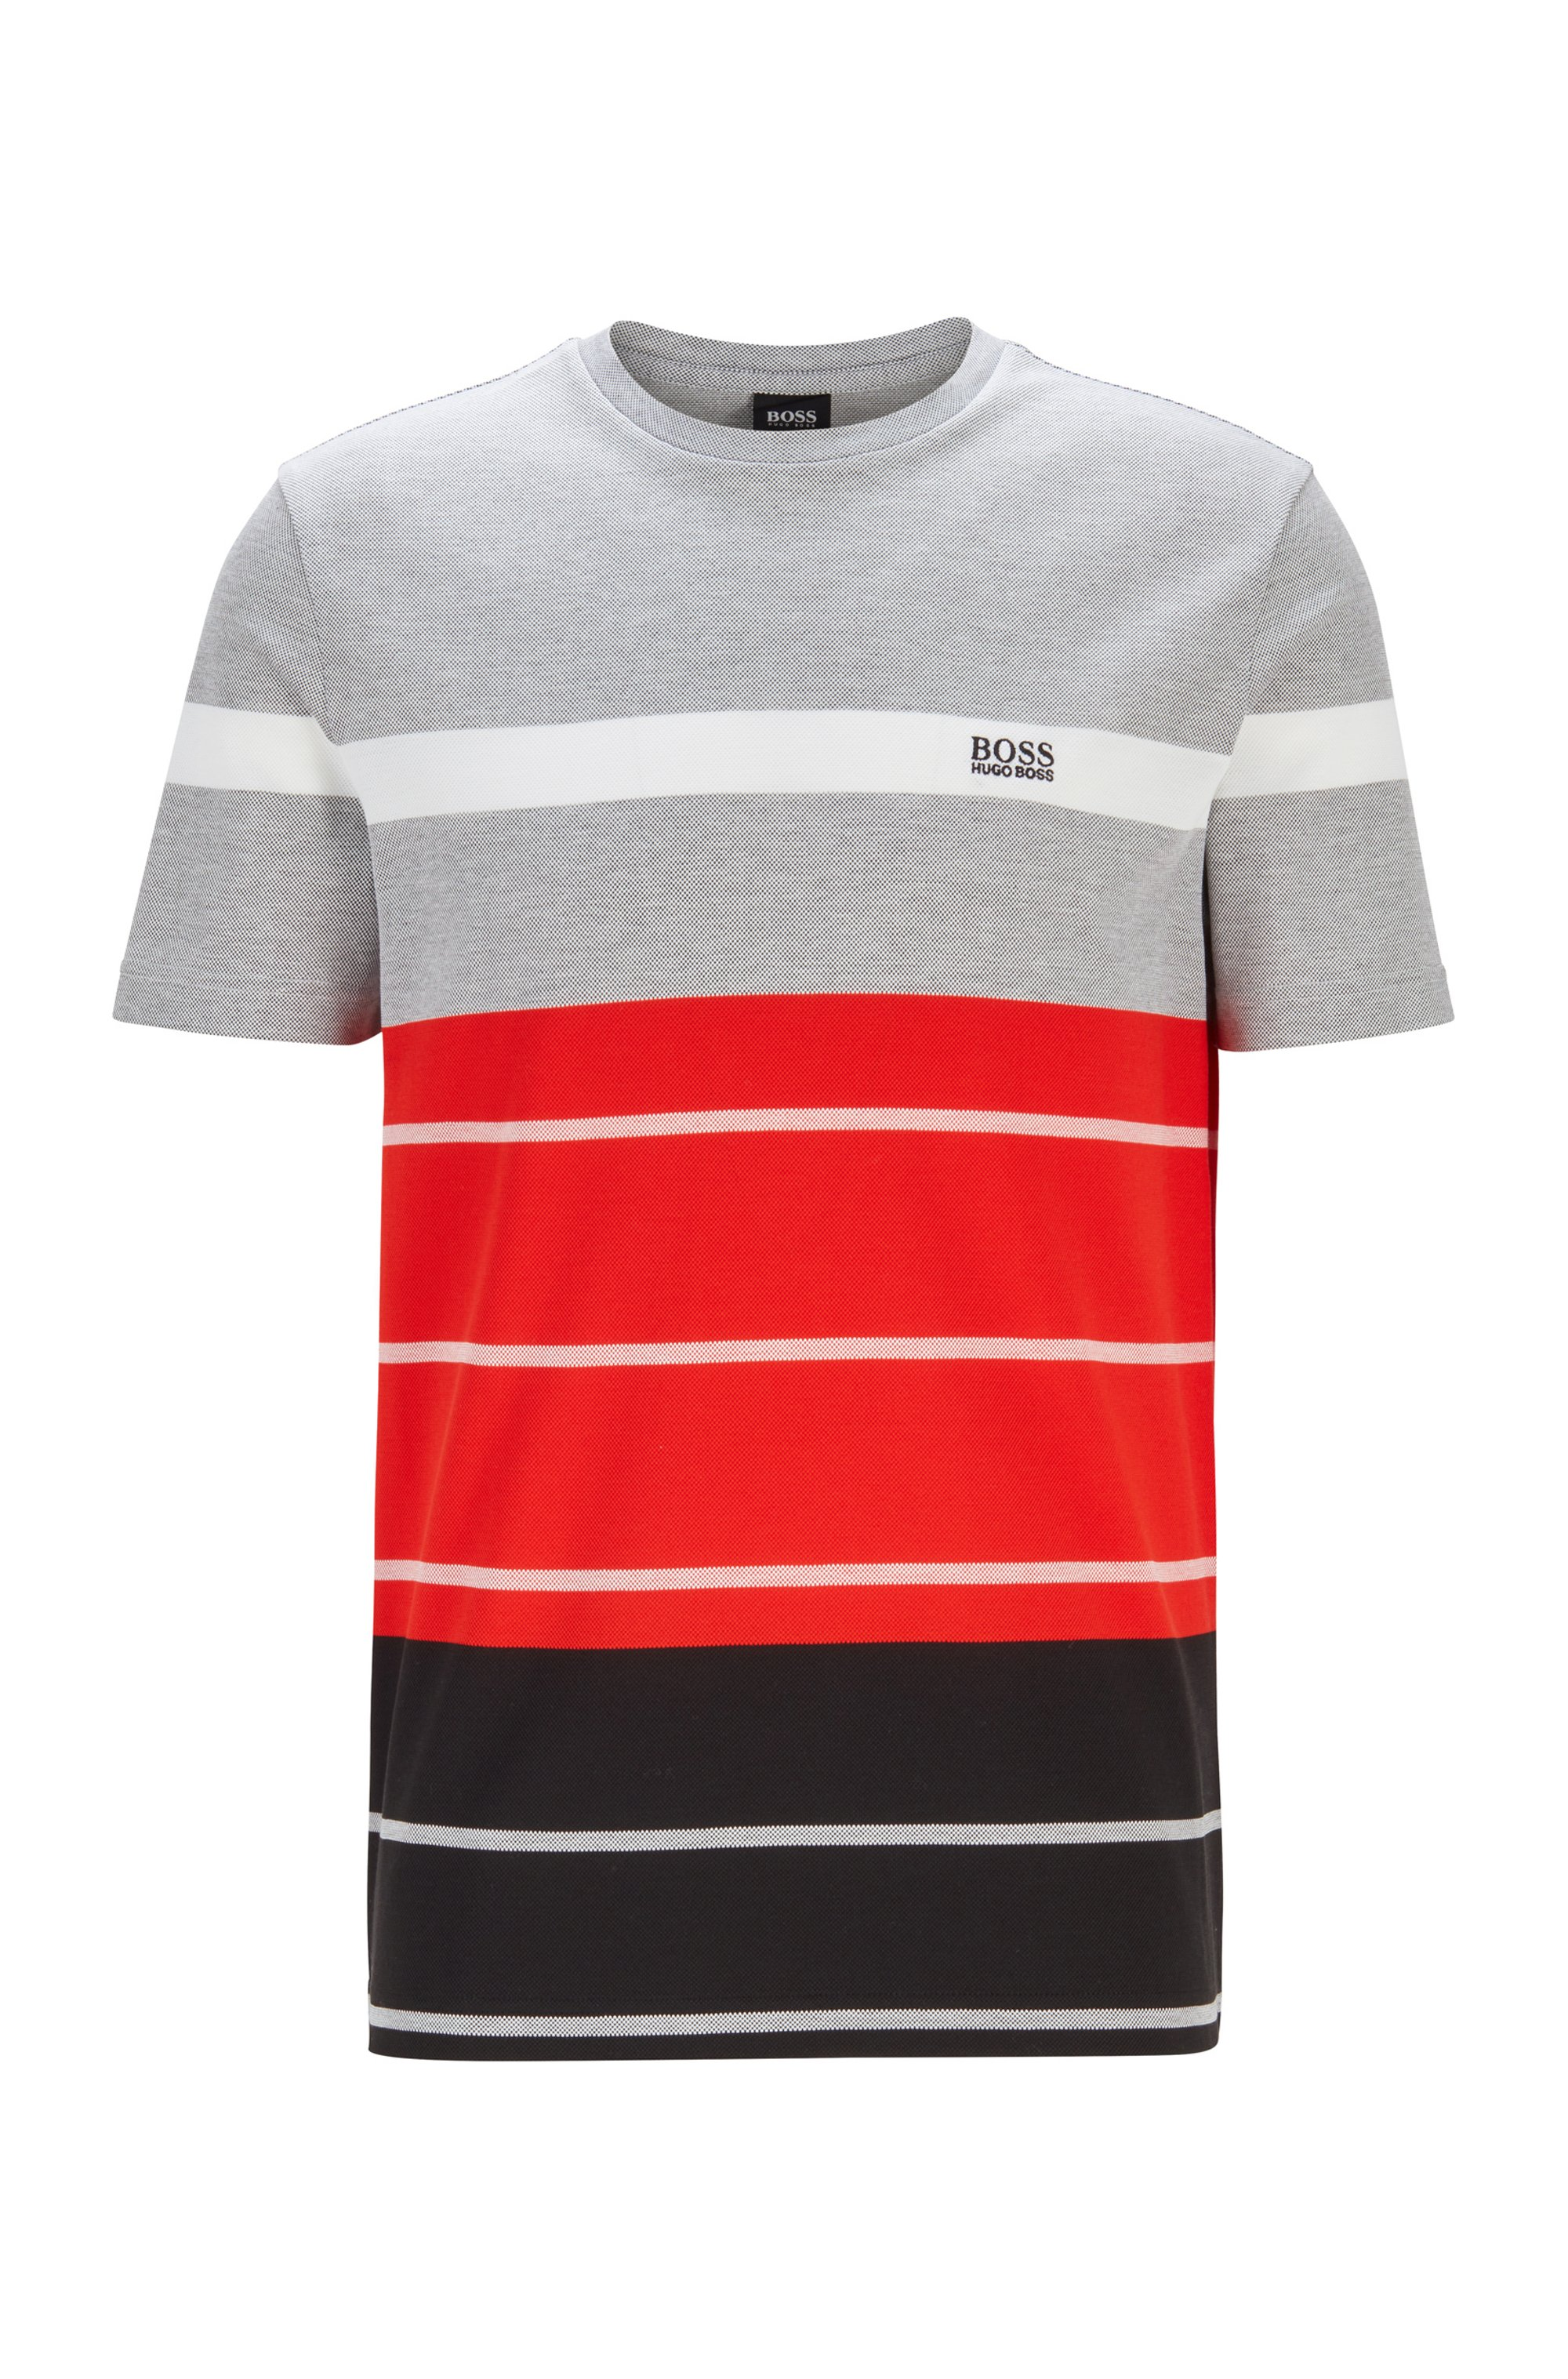 Oxford-cotton T-shirt with block stripes and logo, Black